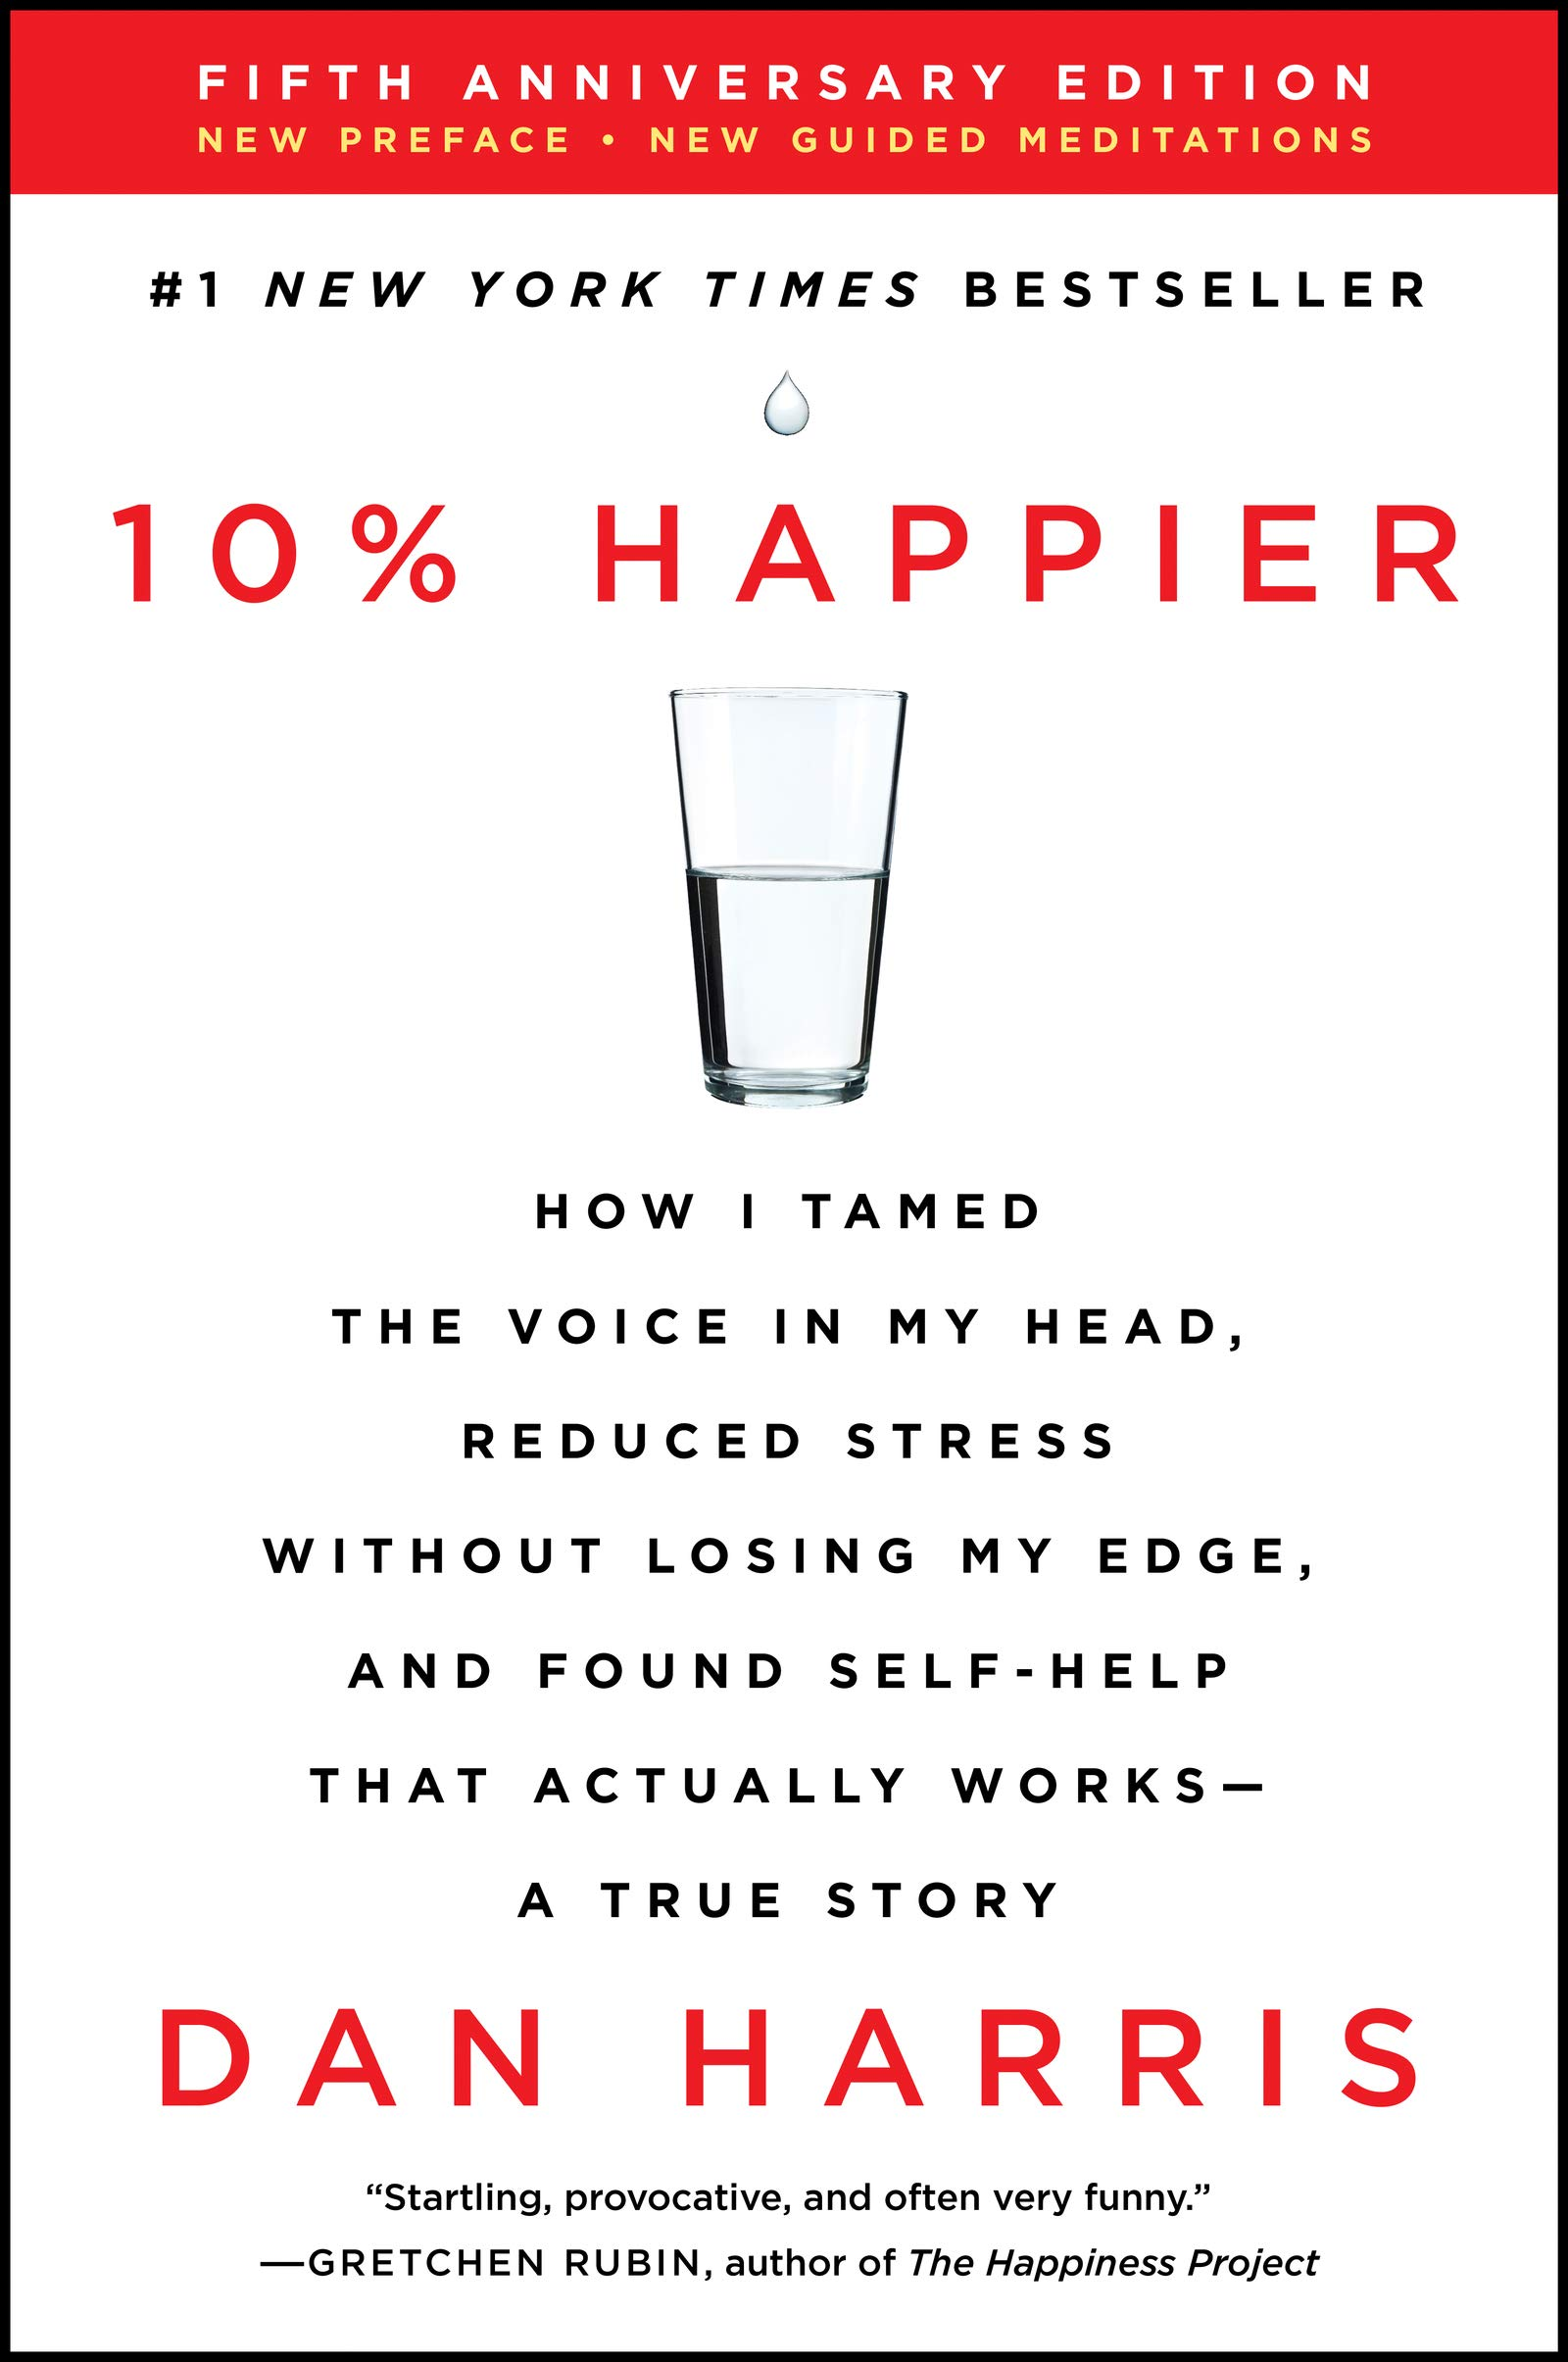 10% Happier Revised Edition: How I Tamed the Voice in My Head, Reduced Stress Without Losing My Edge, and Found Self-Help That Actually Works--A True Story